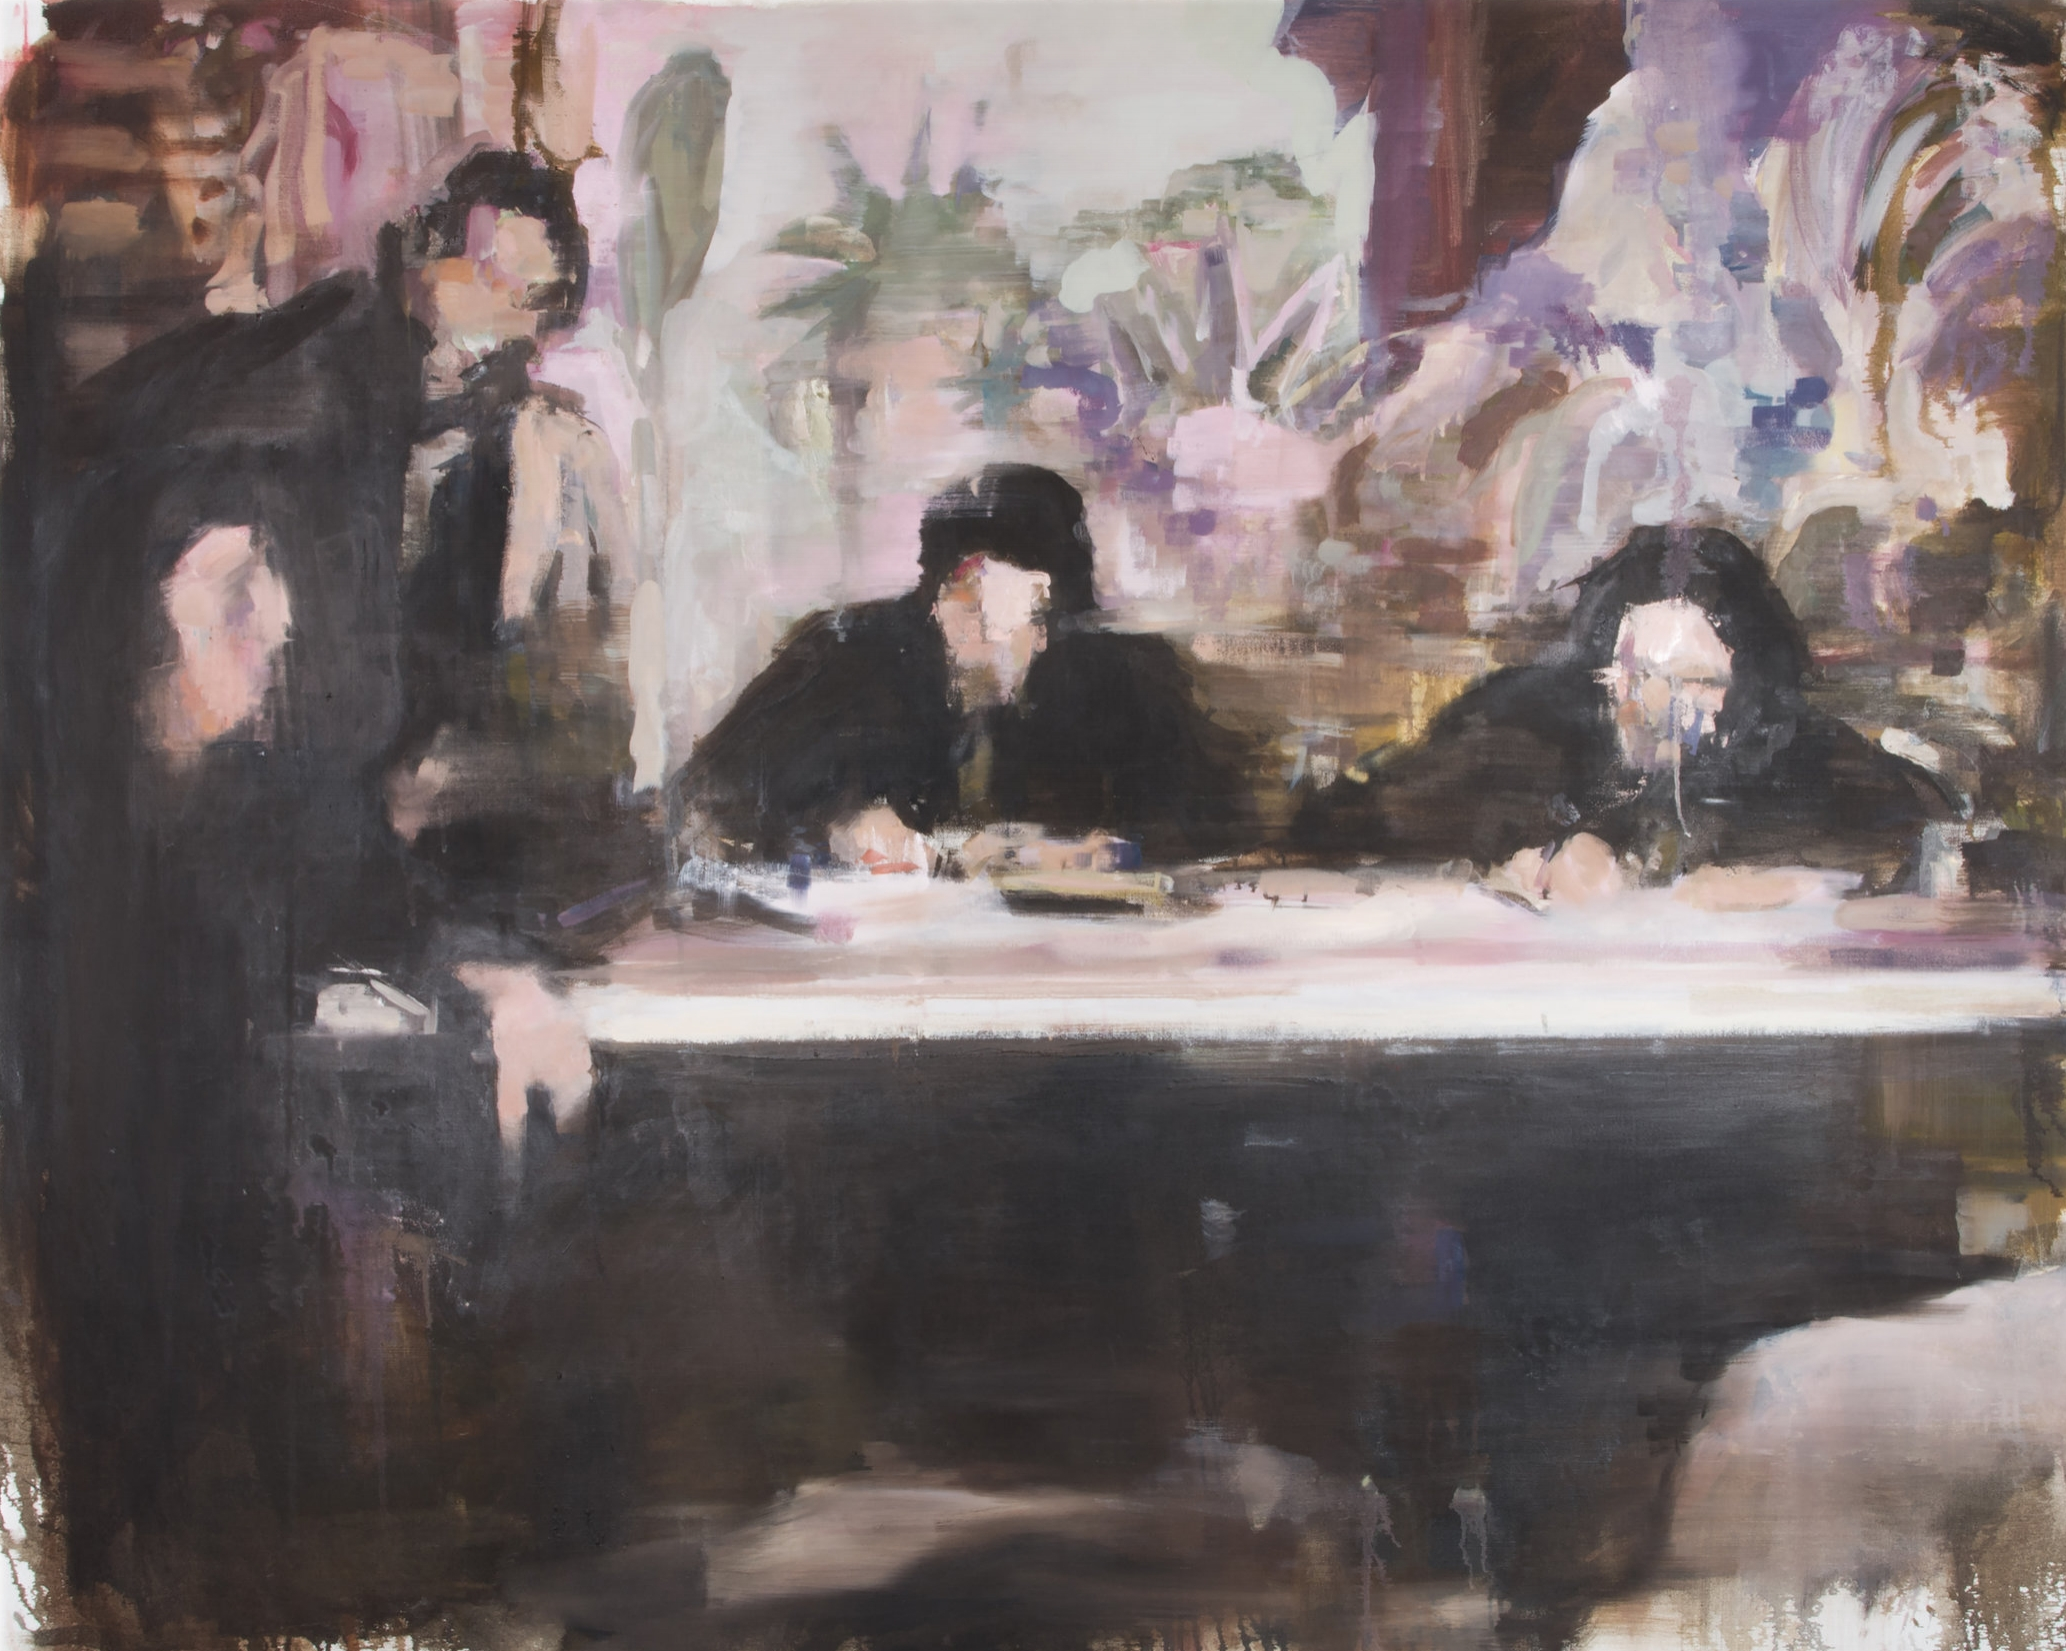 Consequences of Confirmity #2 / 2014 / Oil on canvas / 200cm x 160cm